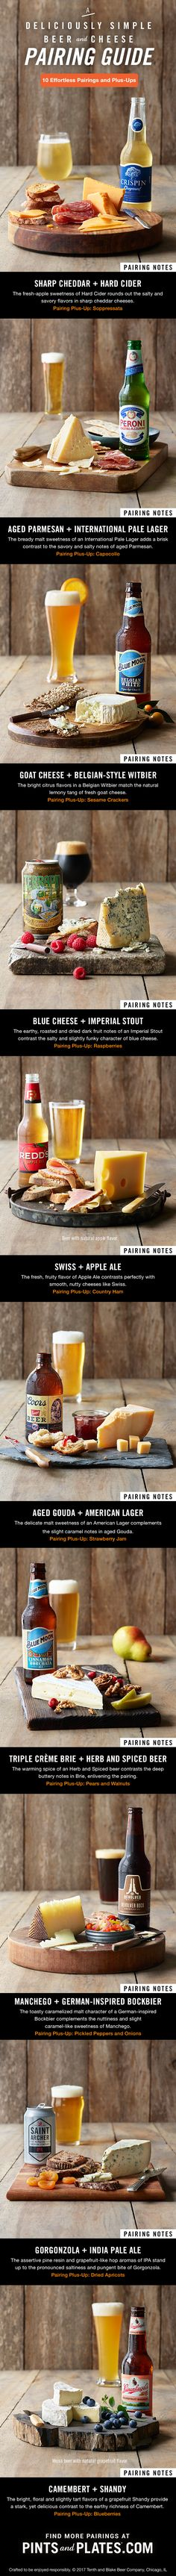 A Deliciously Simple Beer and Cheese Pairing Guide | Pints and Plates